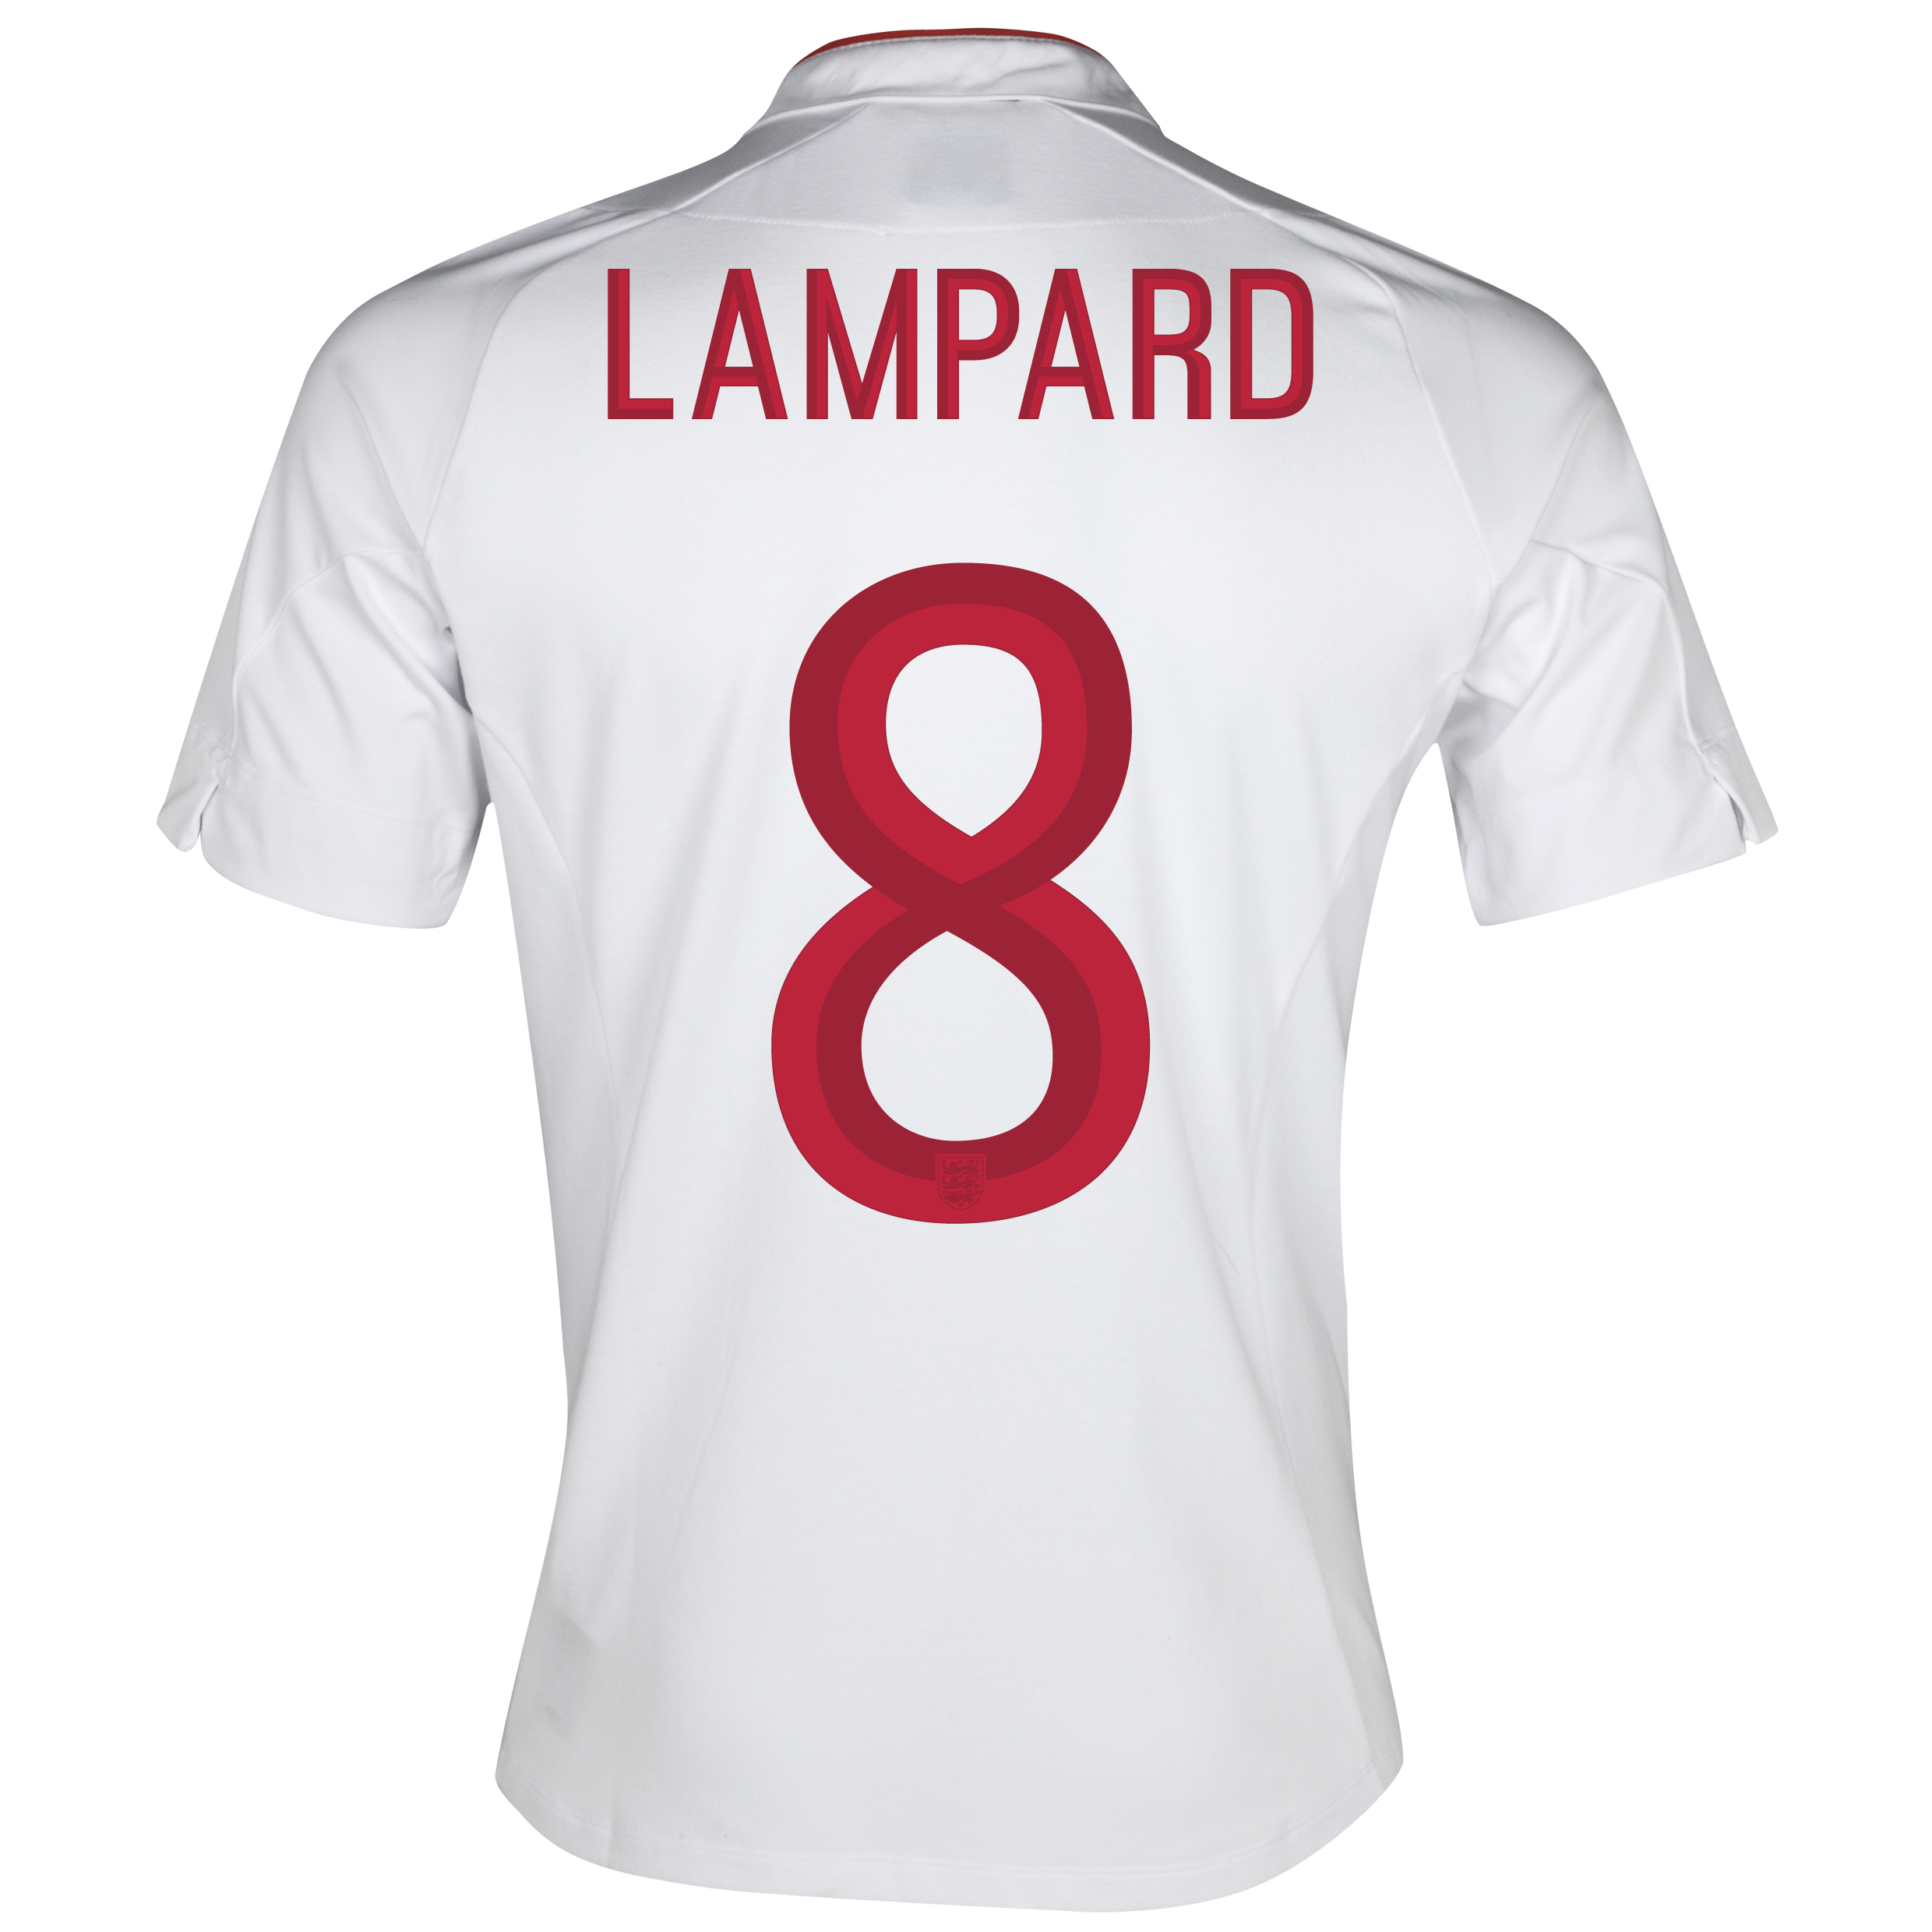 England Home Shirt 2012/13 - Boys with Lampard 8 printing